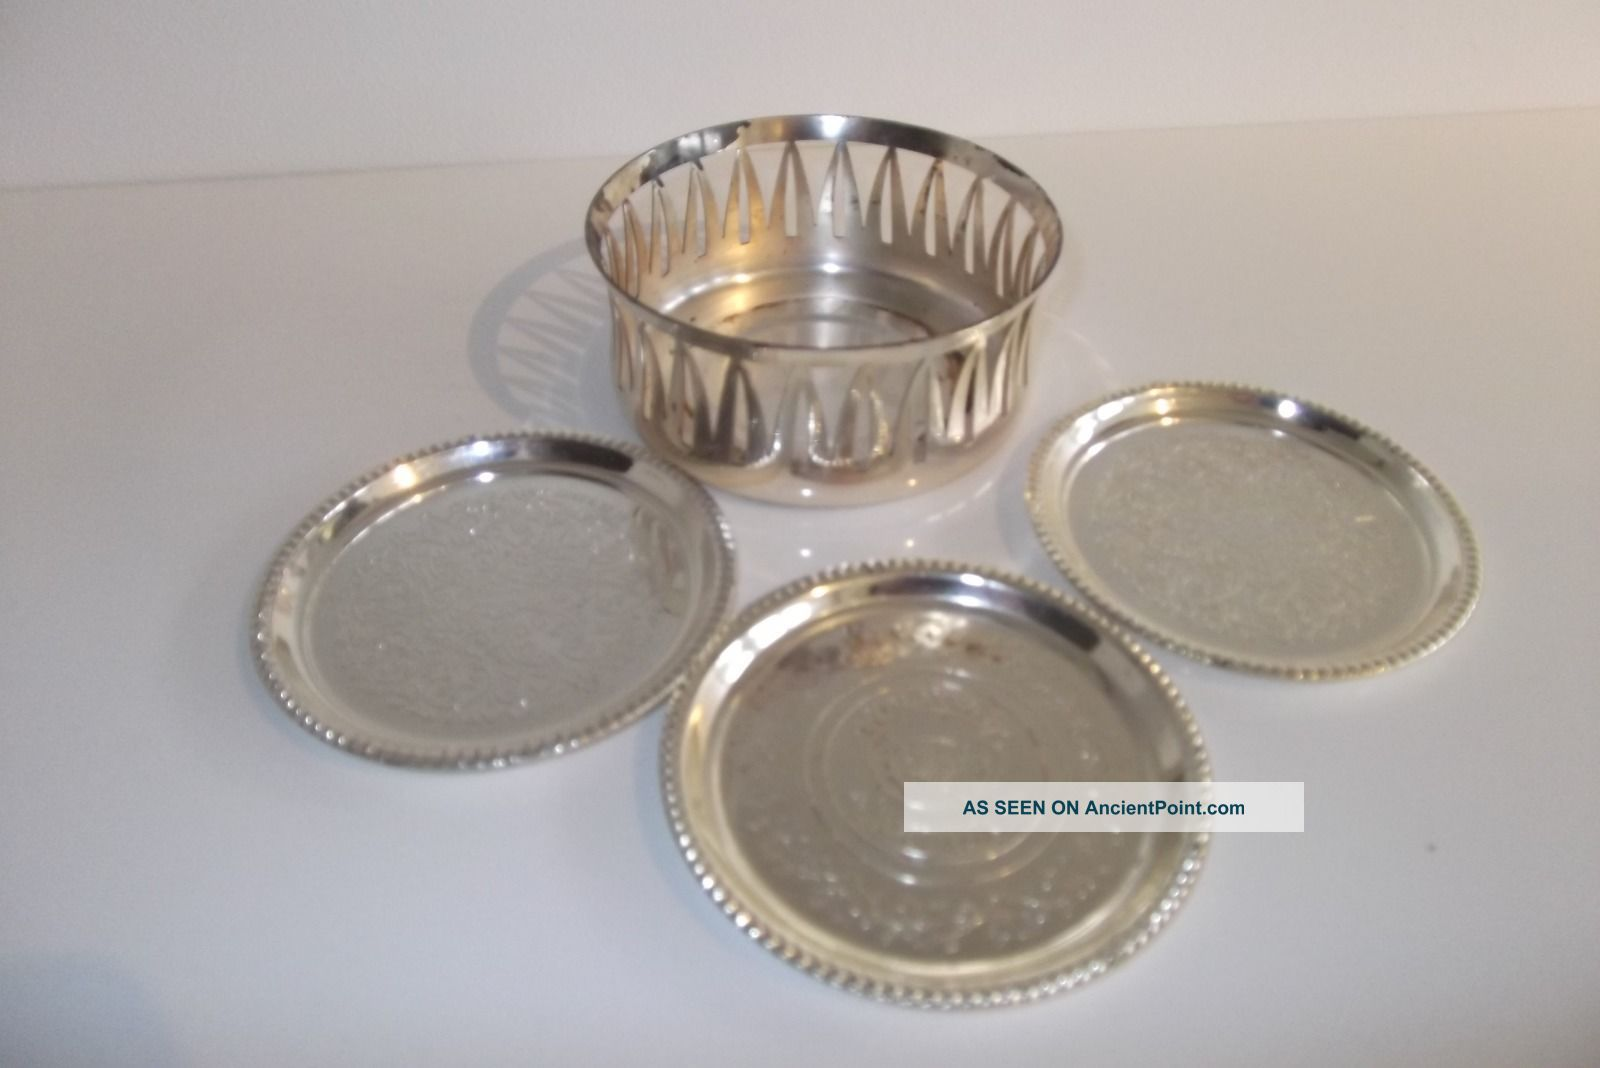 Vintage Silver Plated German Wmf Wine Bottle Holder Coaster,  Glyava Liquers Dishes & Coasters photo